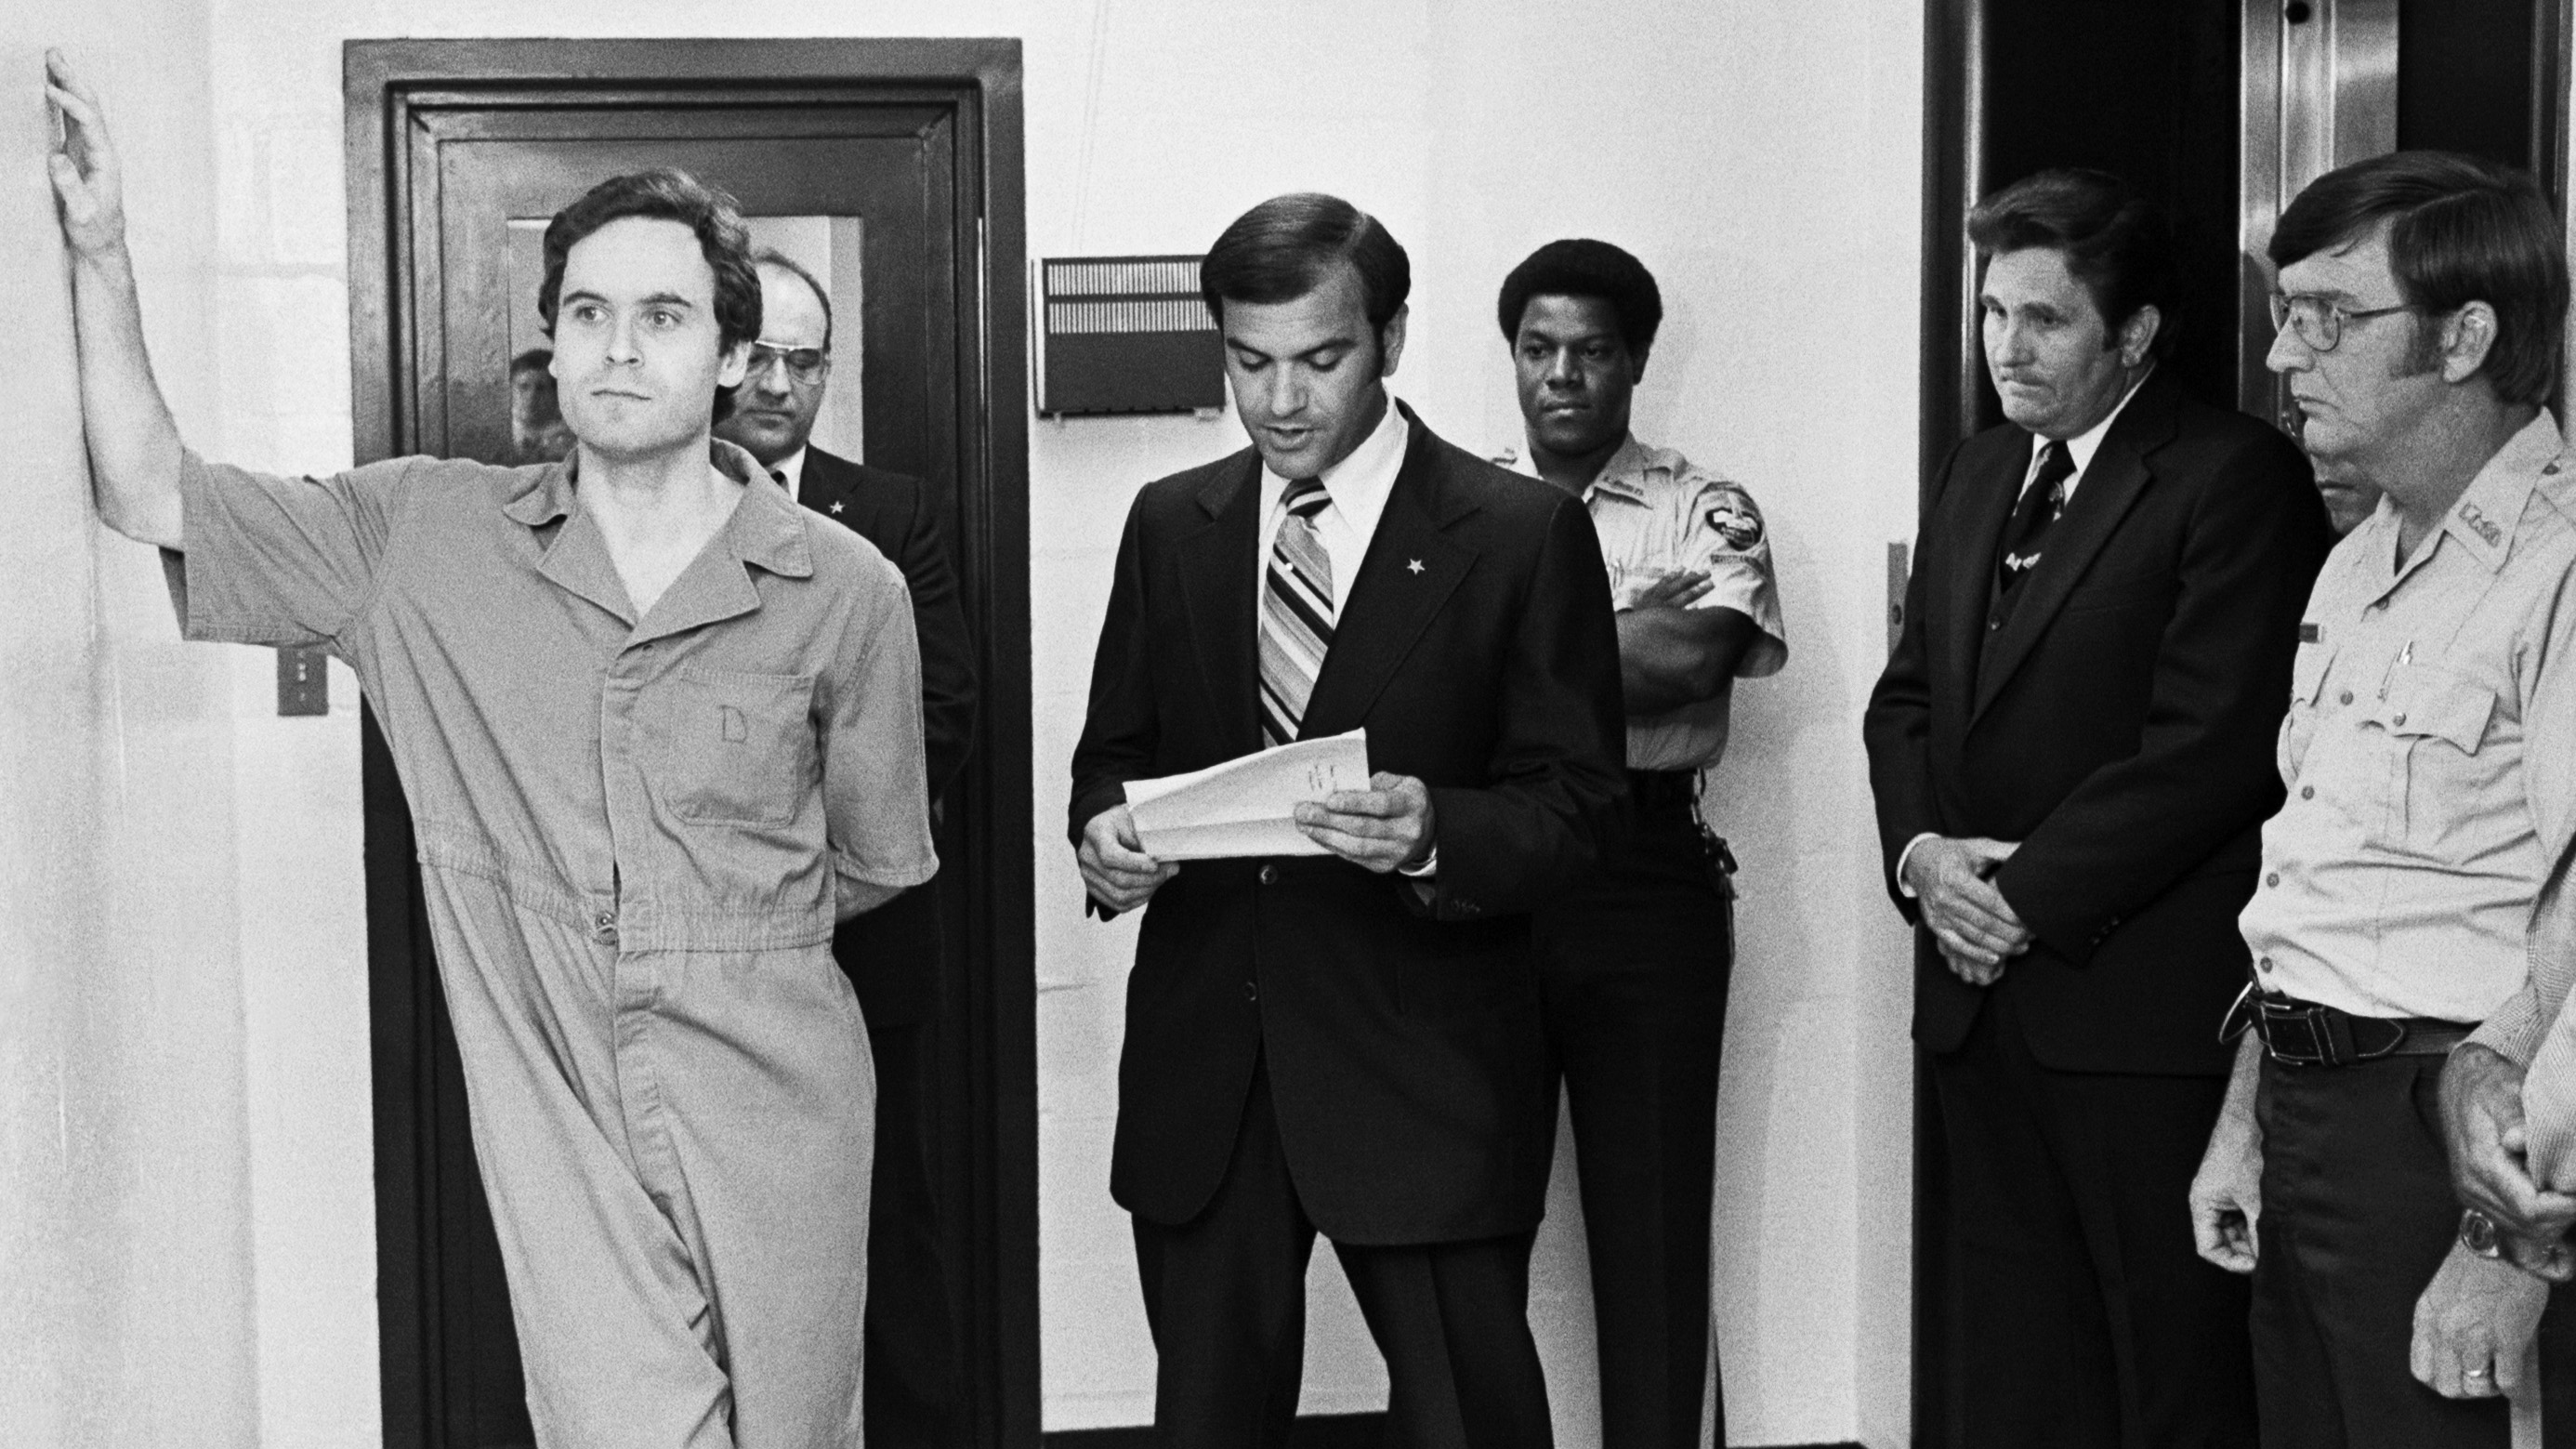 ted bundy his killings on a Ted bundy's last interview with dr james dobson there are plenty of websites and blogs out on the internet, but i'll let you discover those if you are interested in bundy.